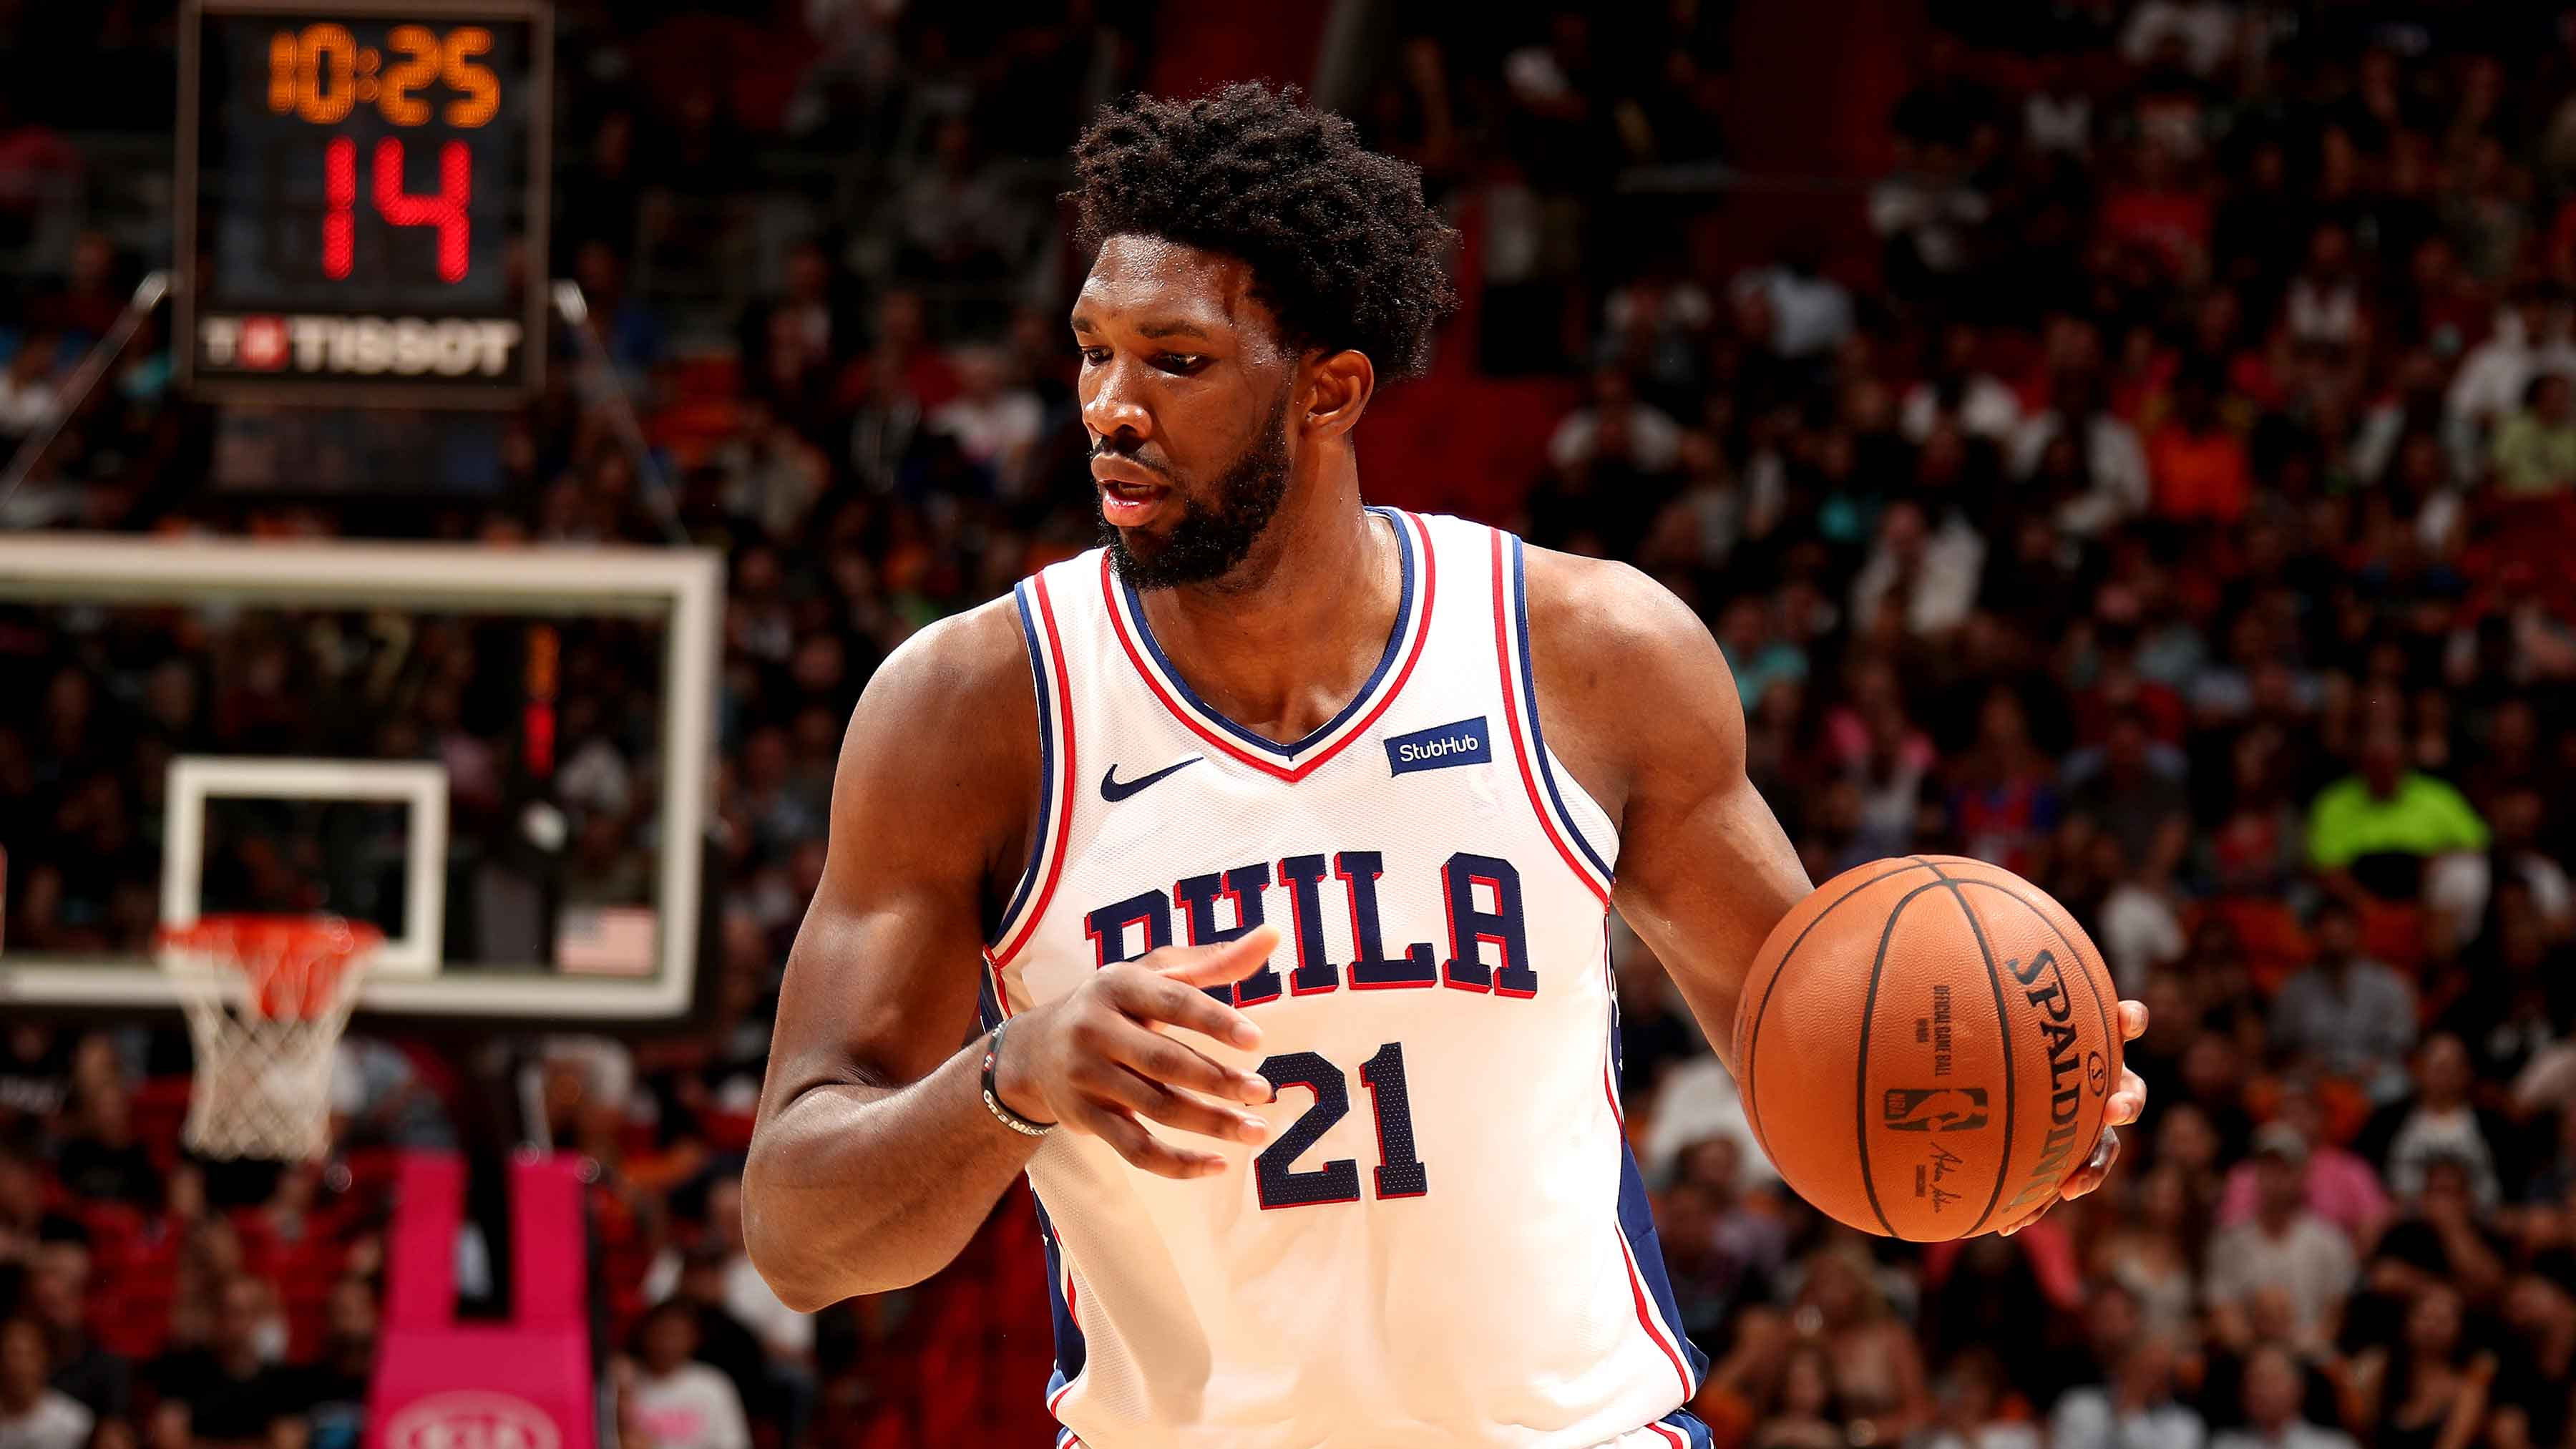 GAME RECAP: Sixers 124, Heat 114